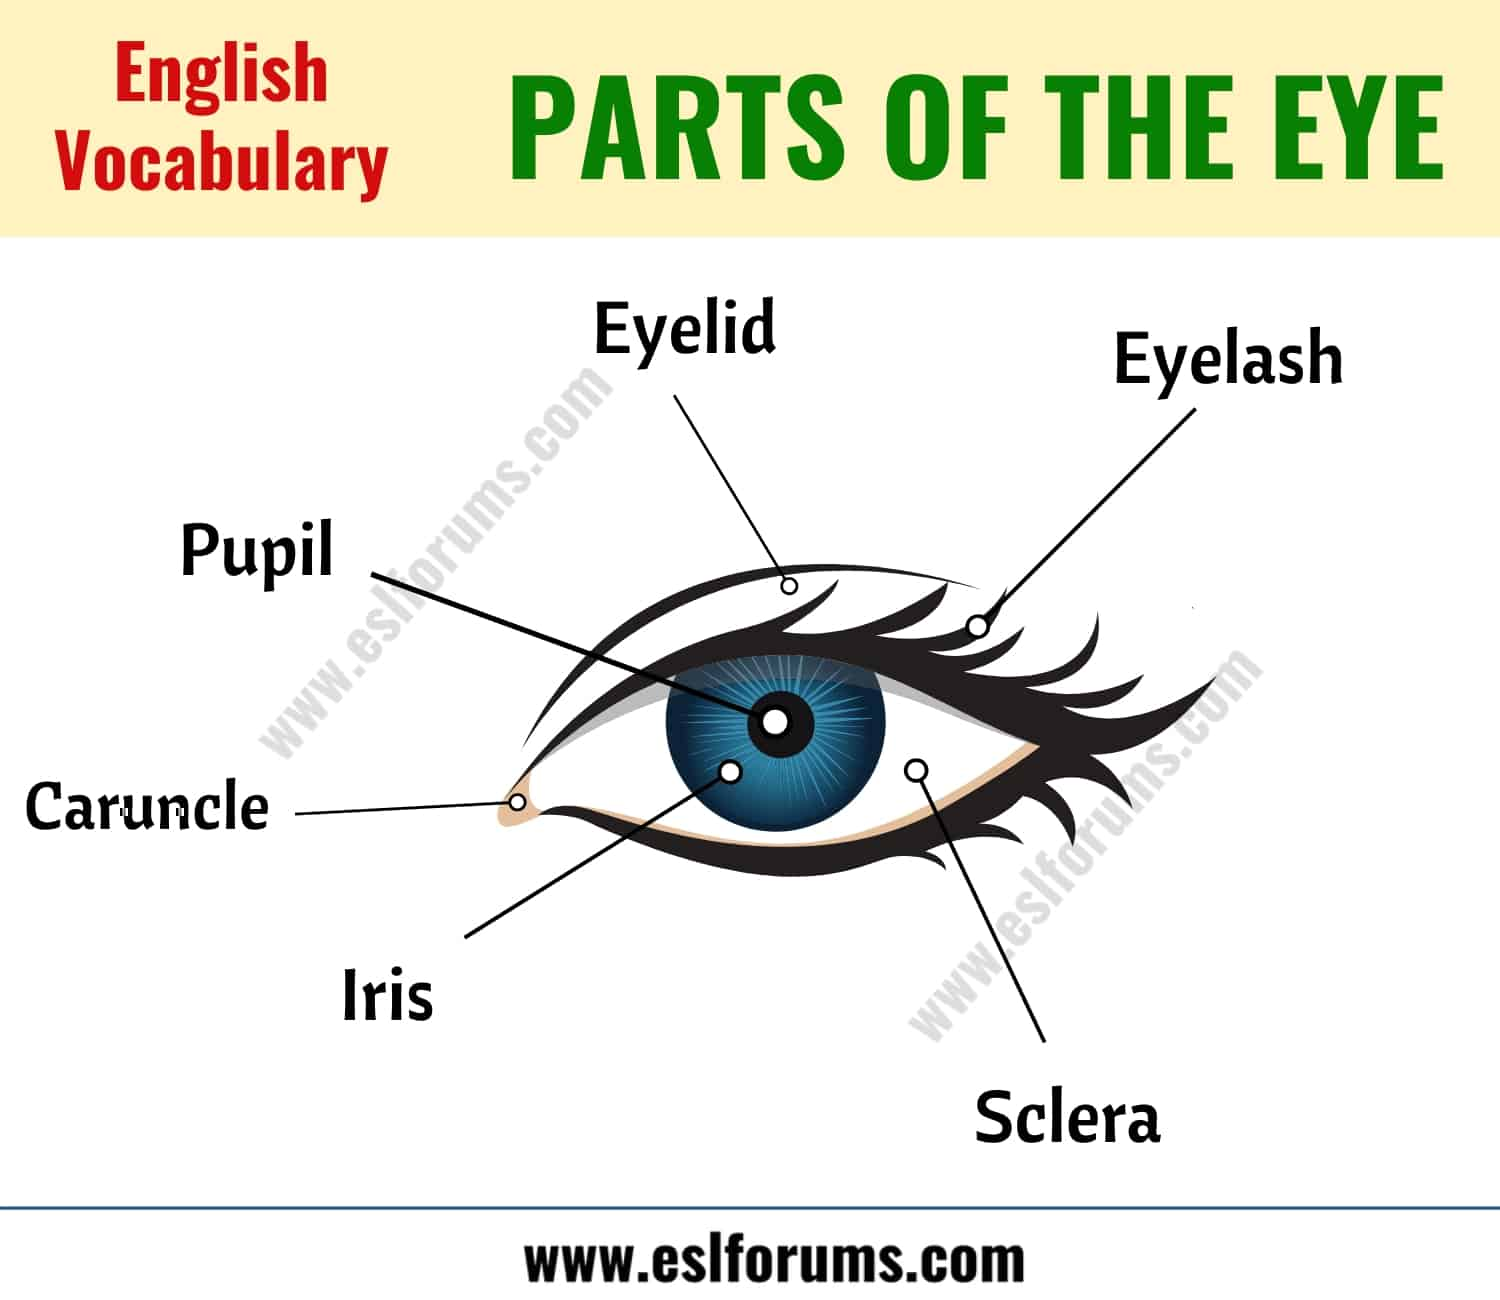 Parts of the Eye: Learn Different Eye Parts with ESL Picture!